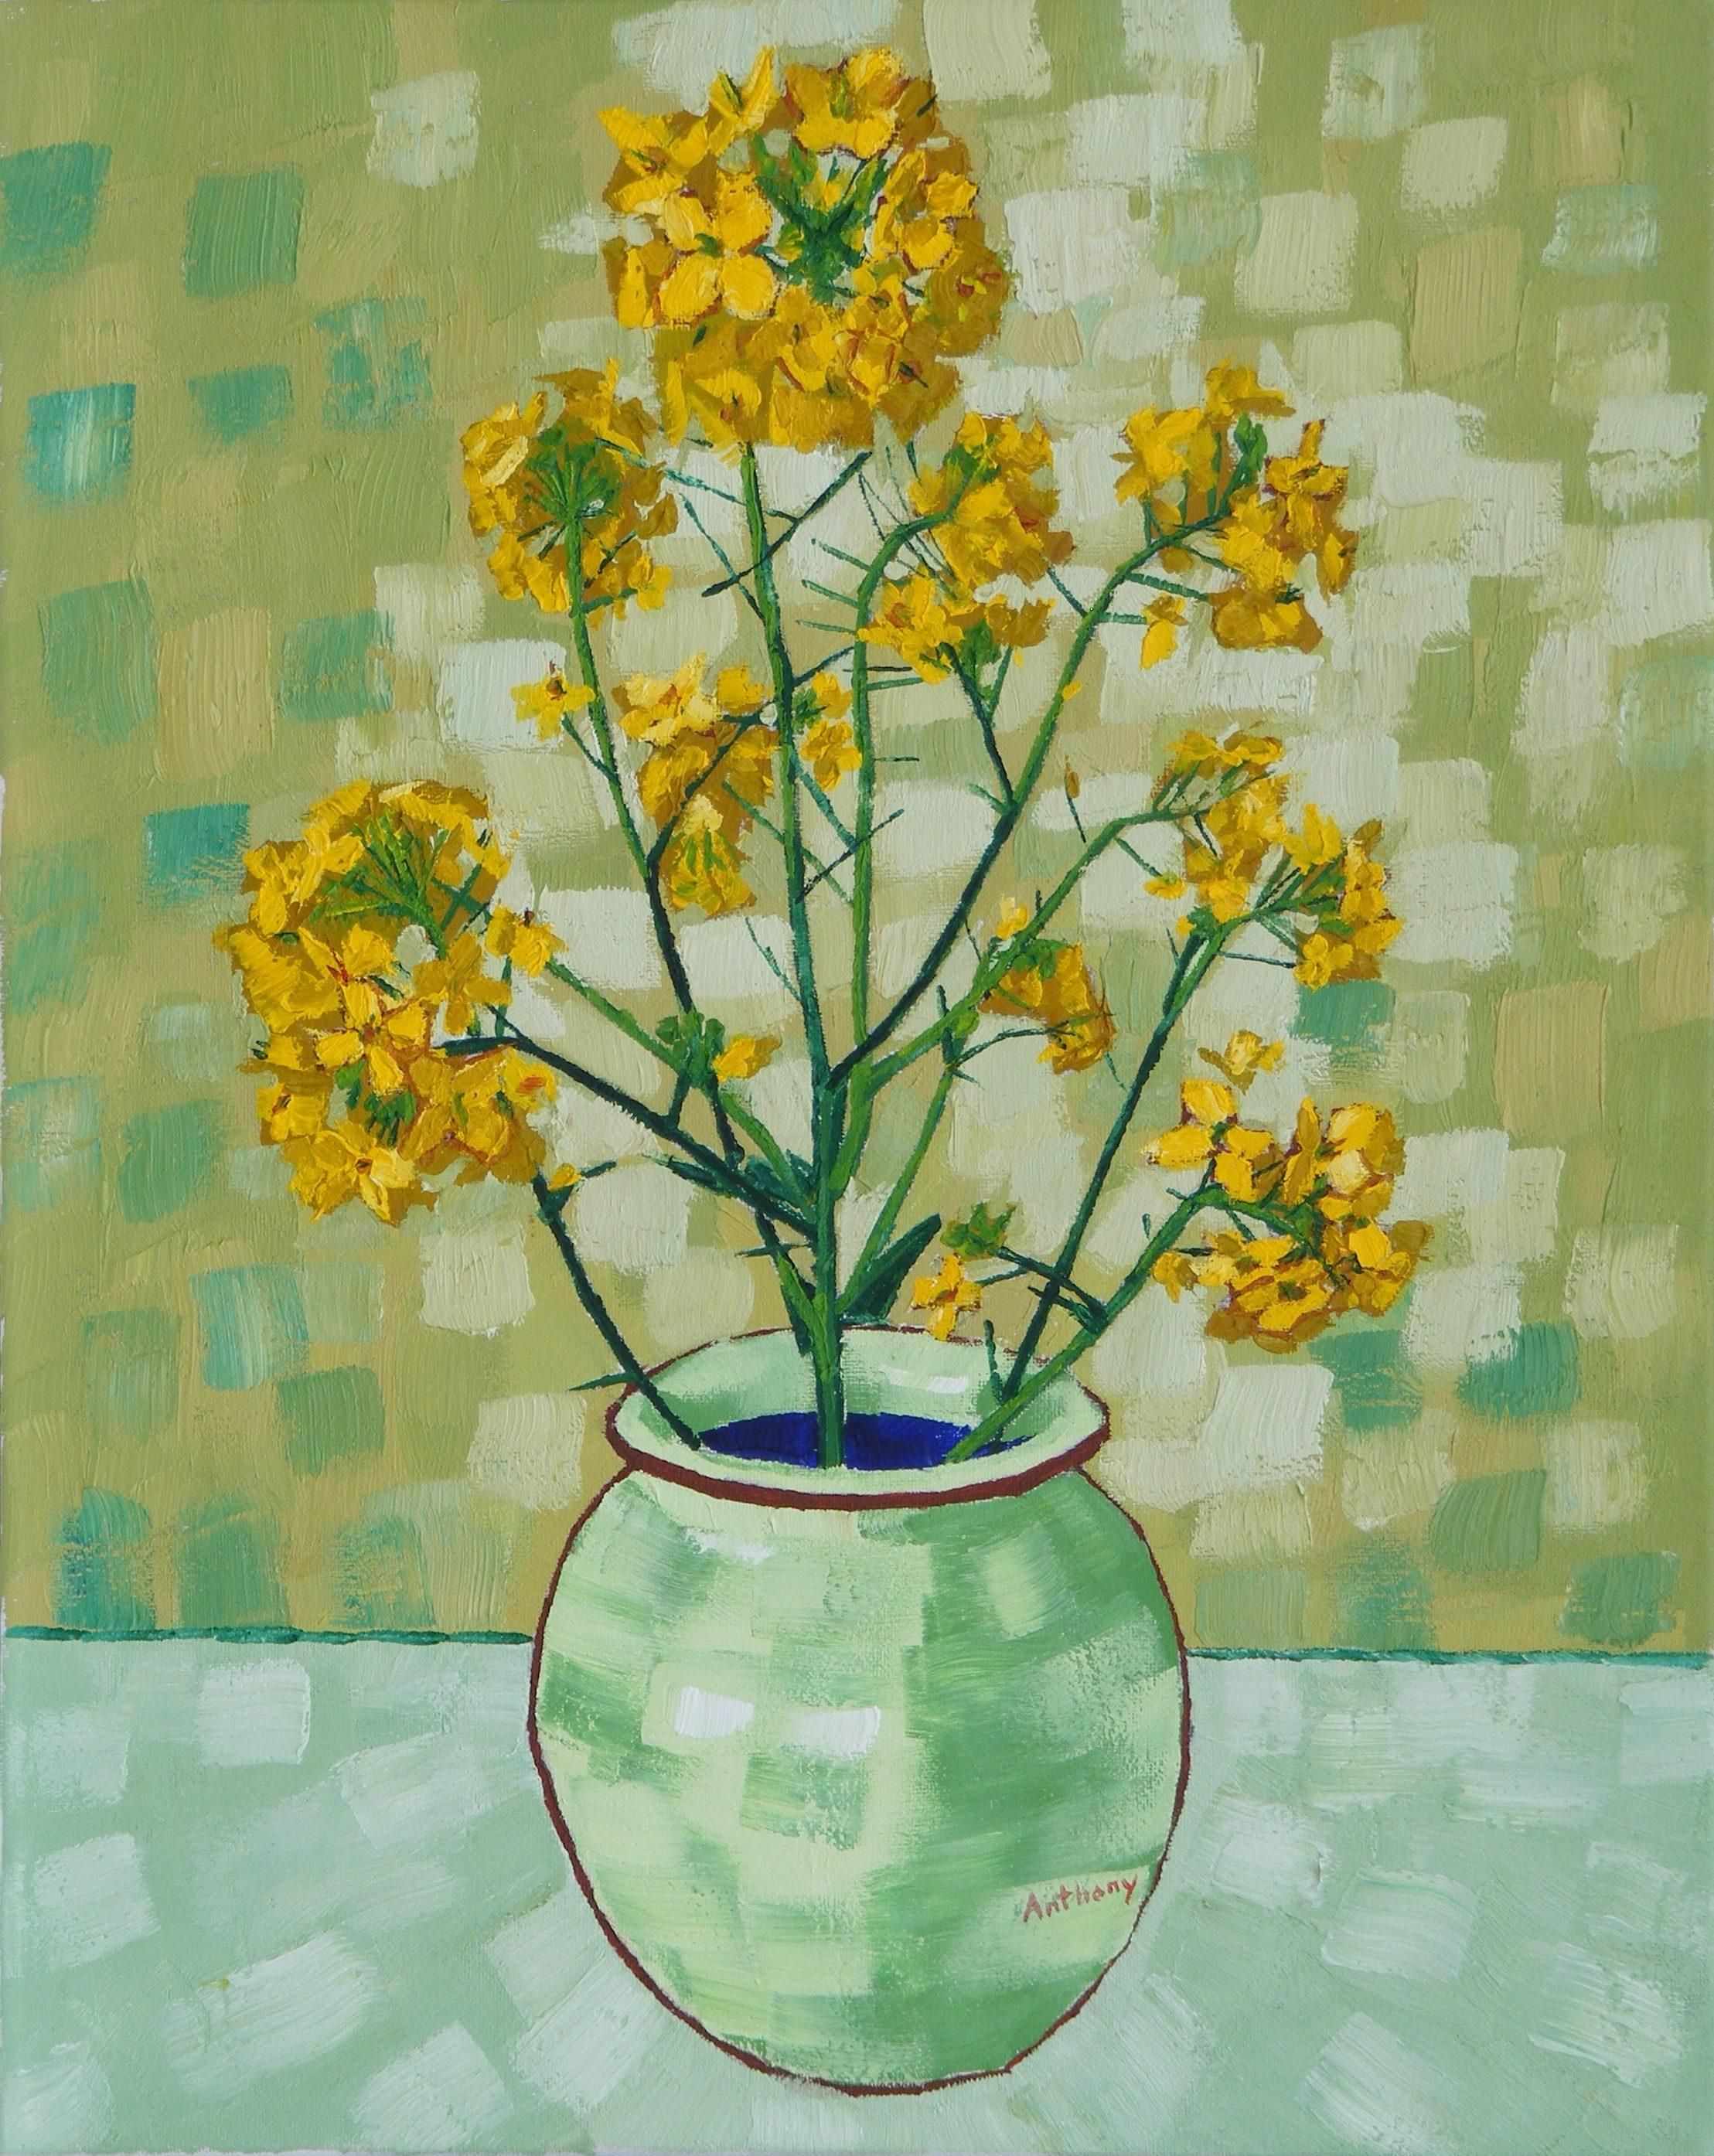 Anthony D Padgett - Rapeseed Still Life Vase with Fourteen Sunflowers after Vincent Van Gogh For Sale at 1stdibs & Anthony D Padgett - Rapeseed Still Life Vase with Fourteen ...